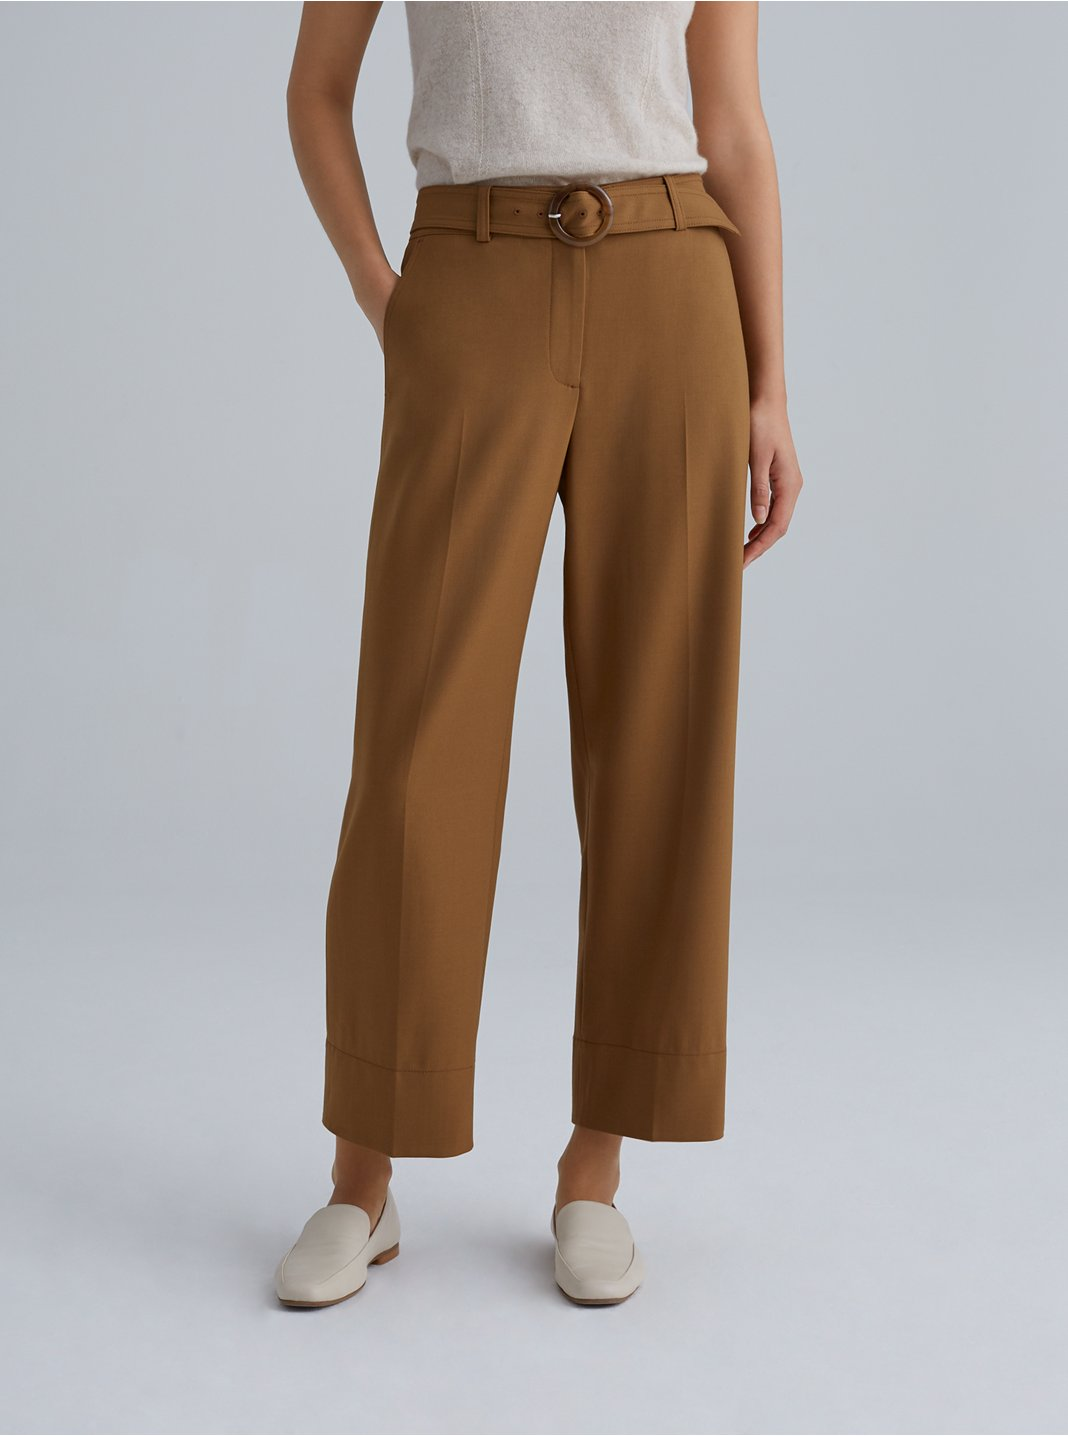 Round Buckle Belted Trouser